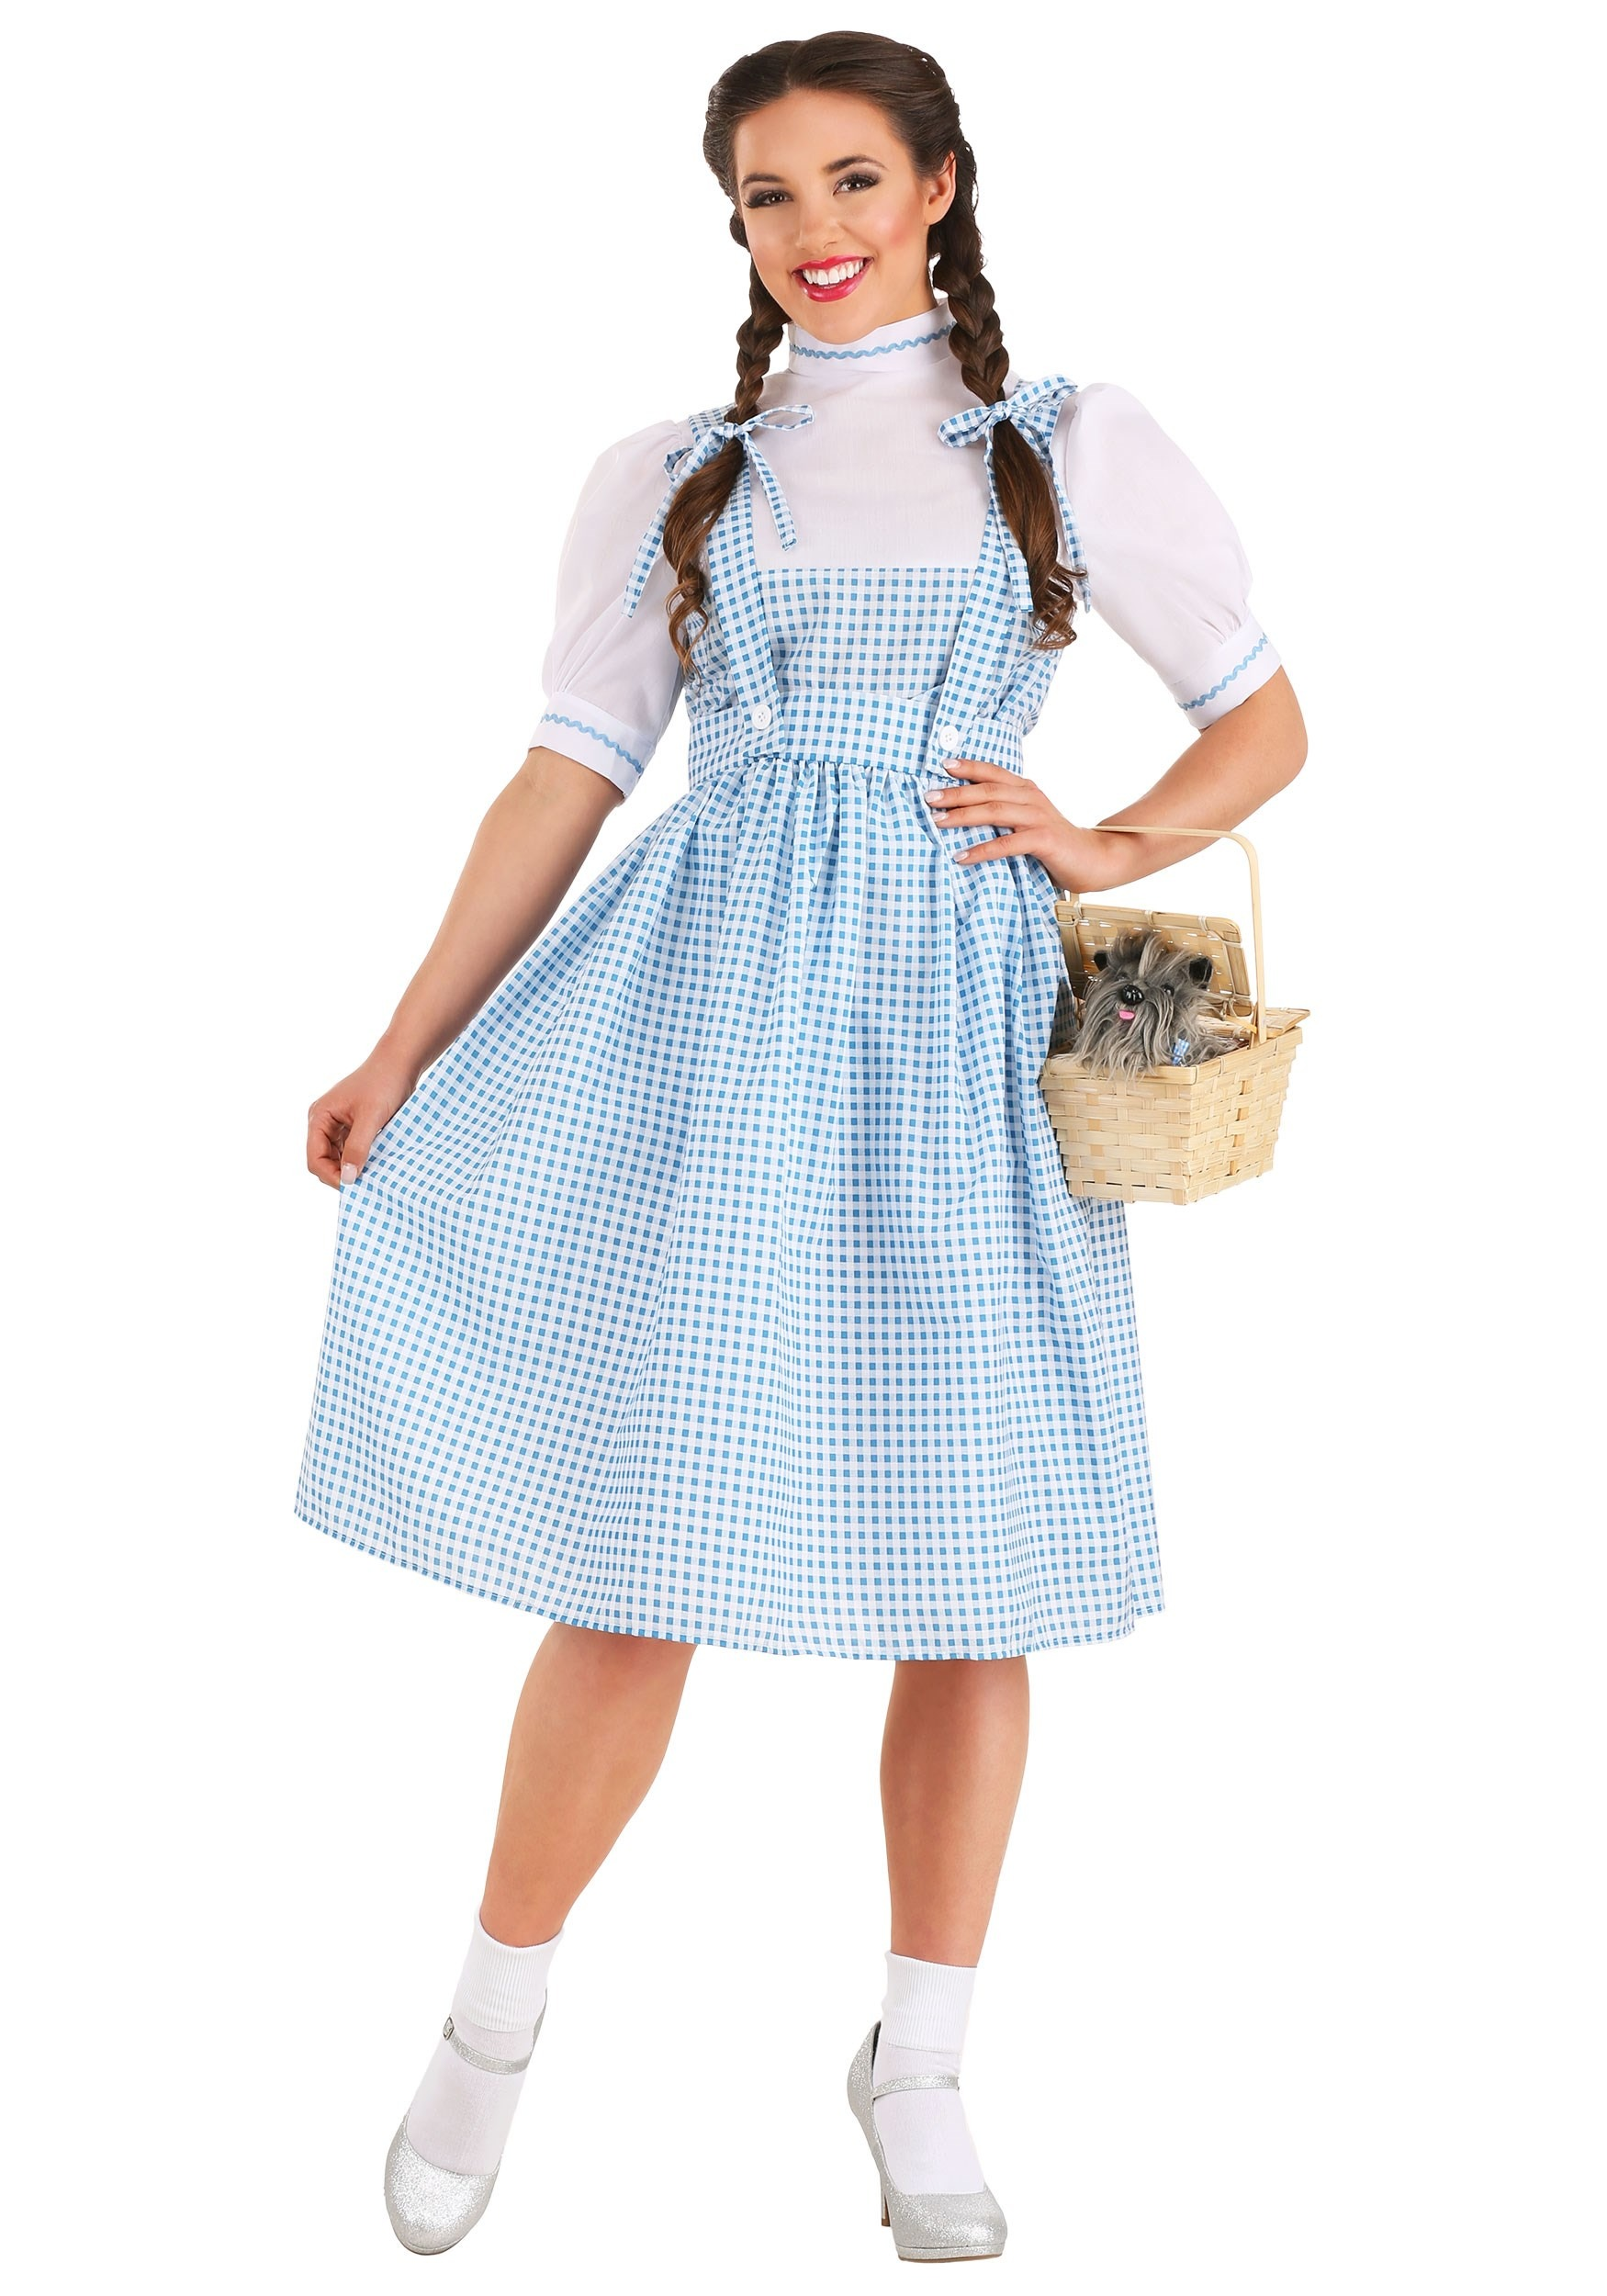 adult plus size kansas girl costume 1x 2x 3x 4x 5x 6x 7x